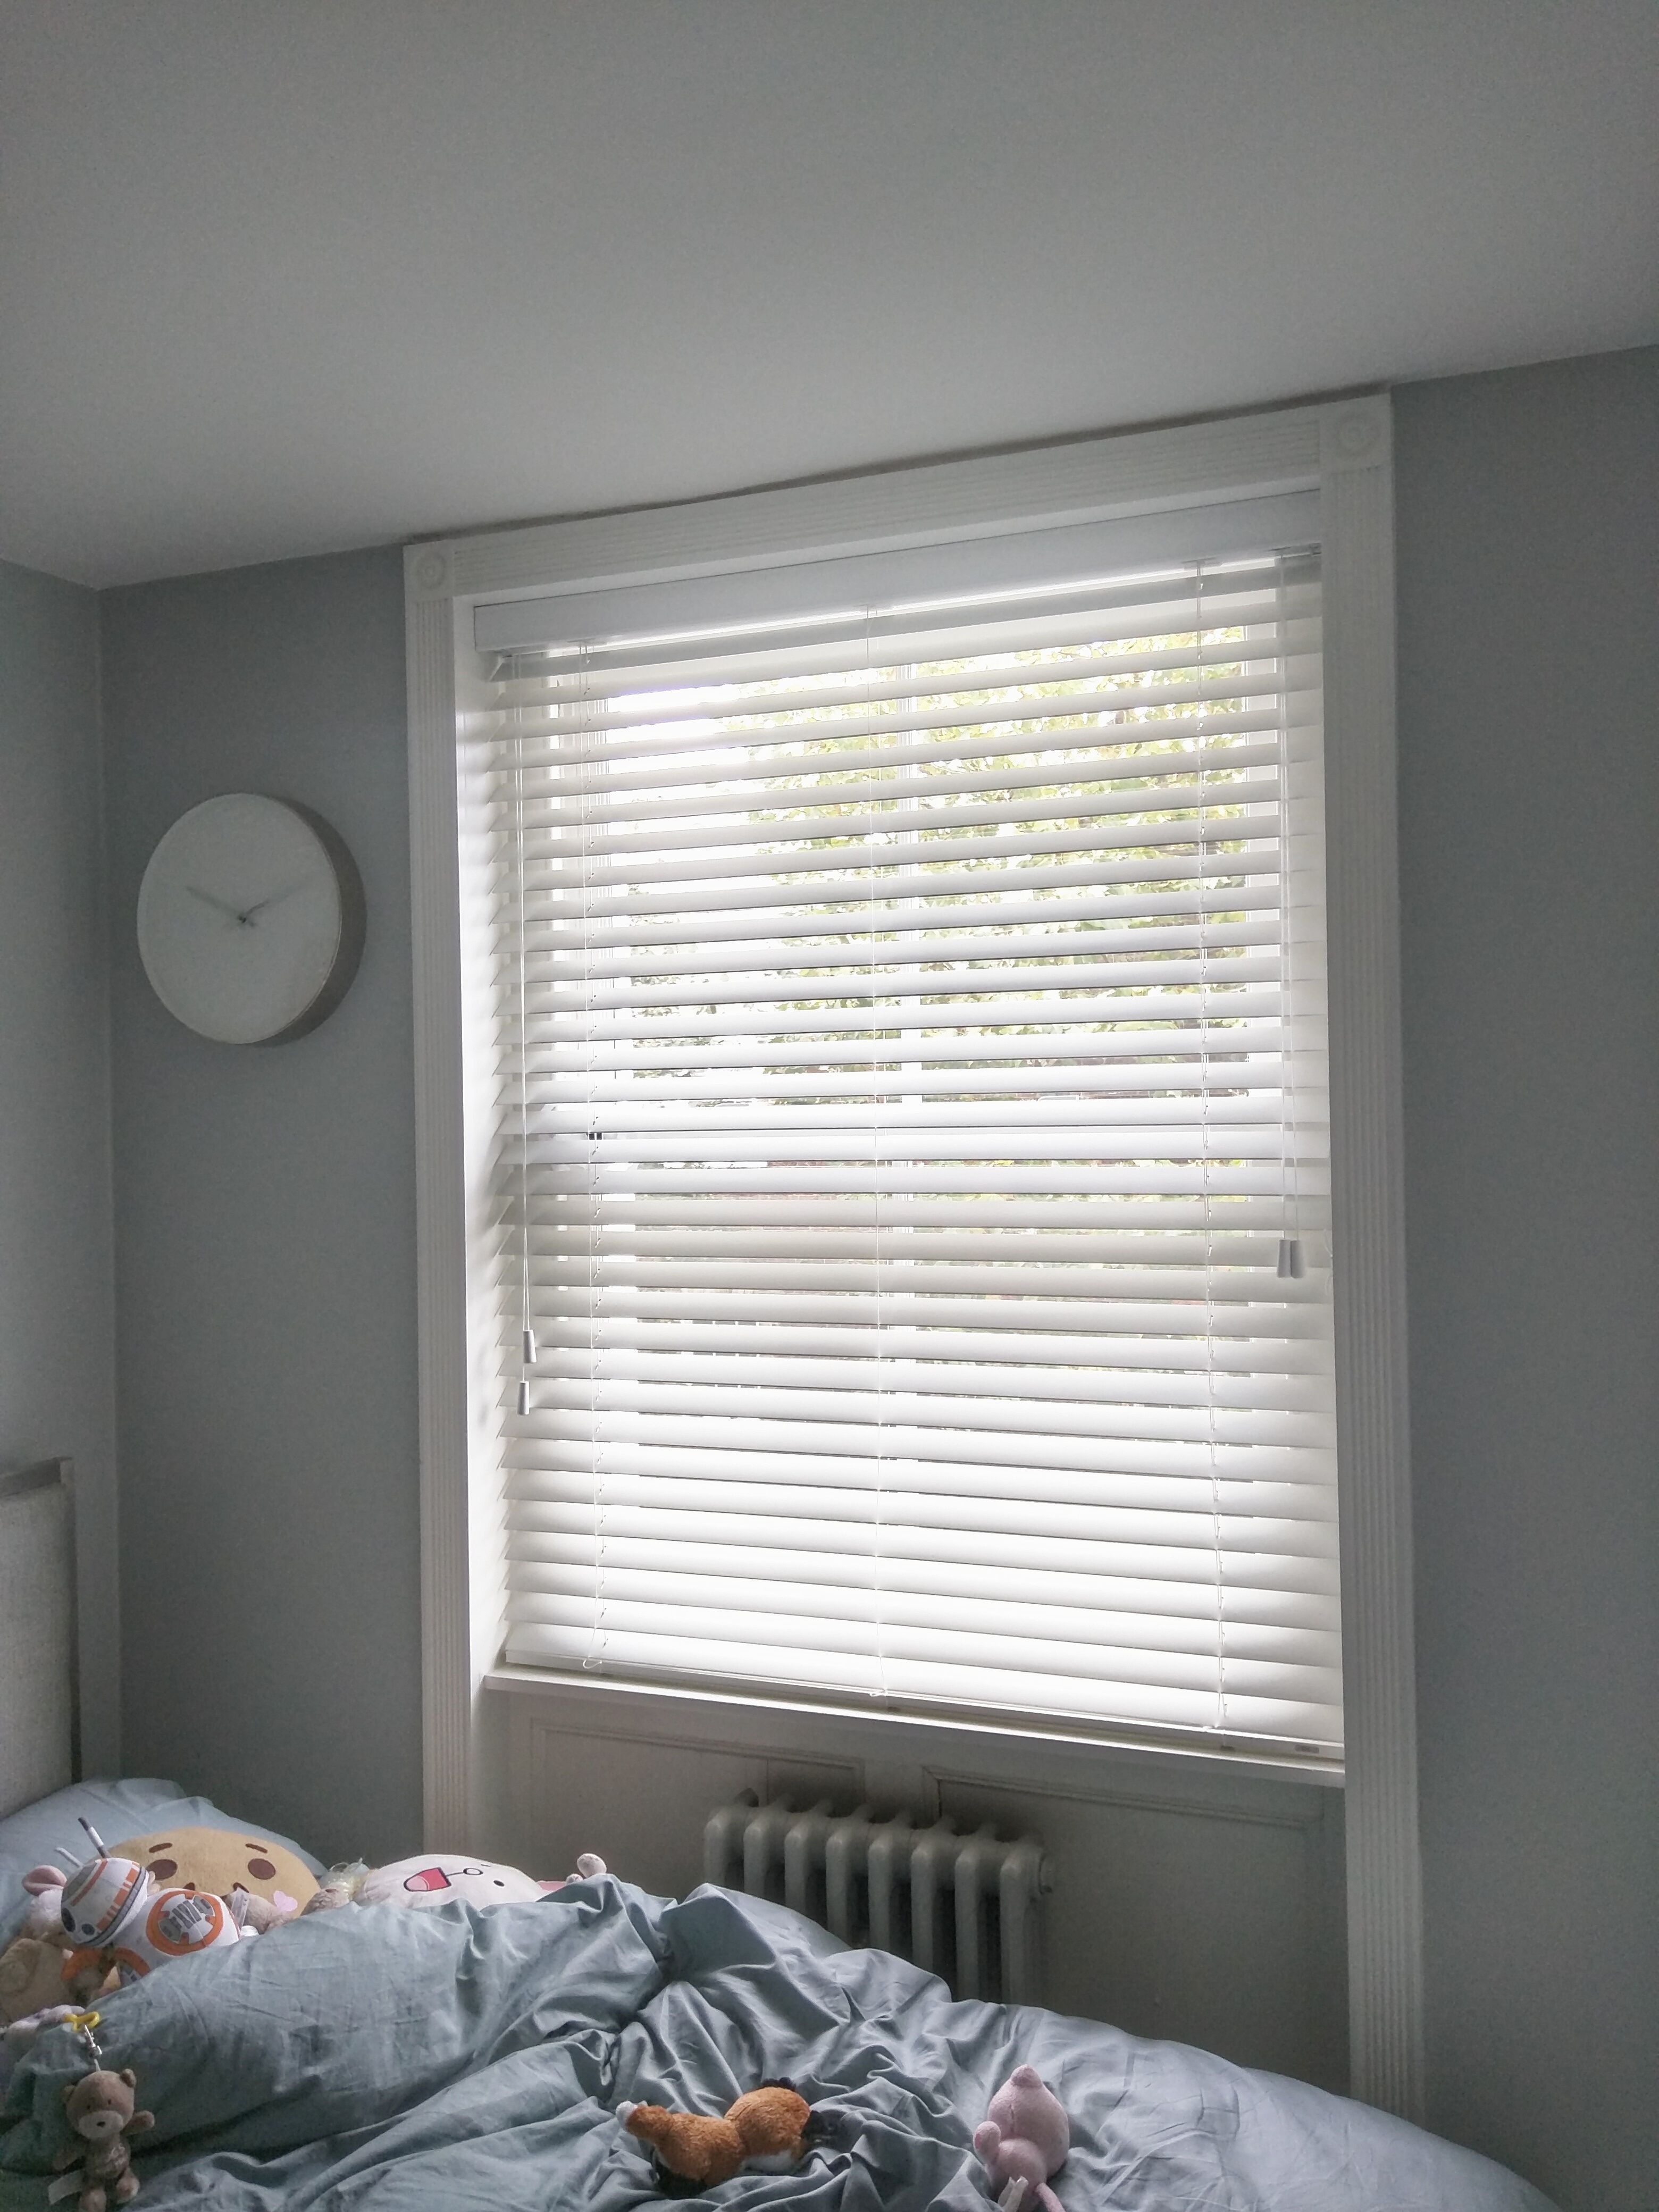 Wooden Venetian Blinds With Matching Strings Fitted To Bedroom